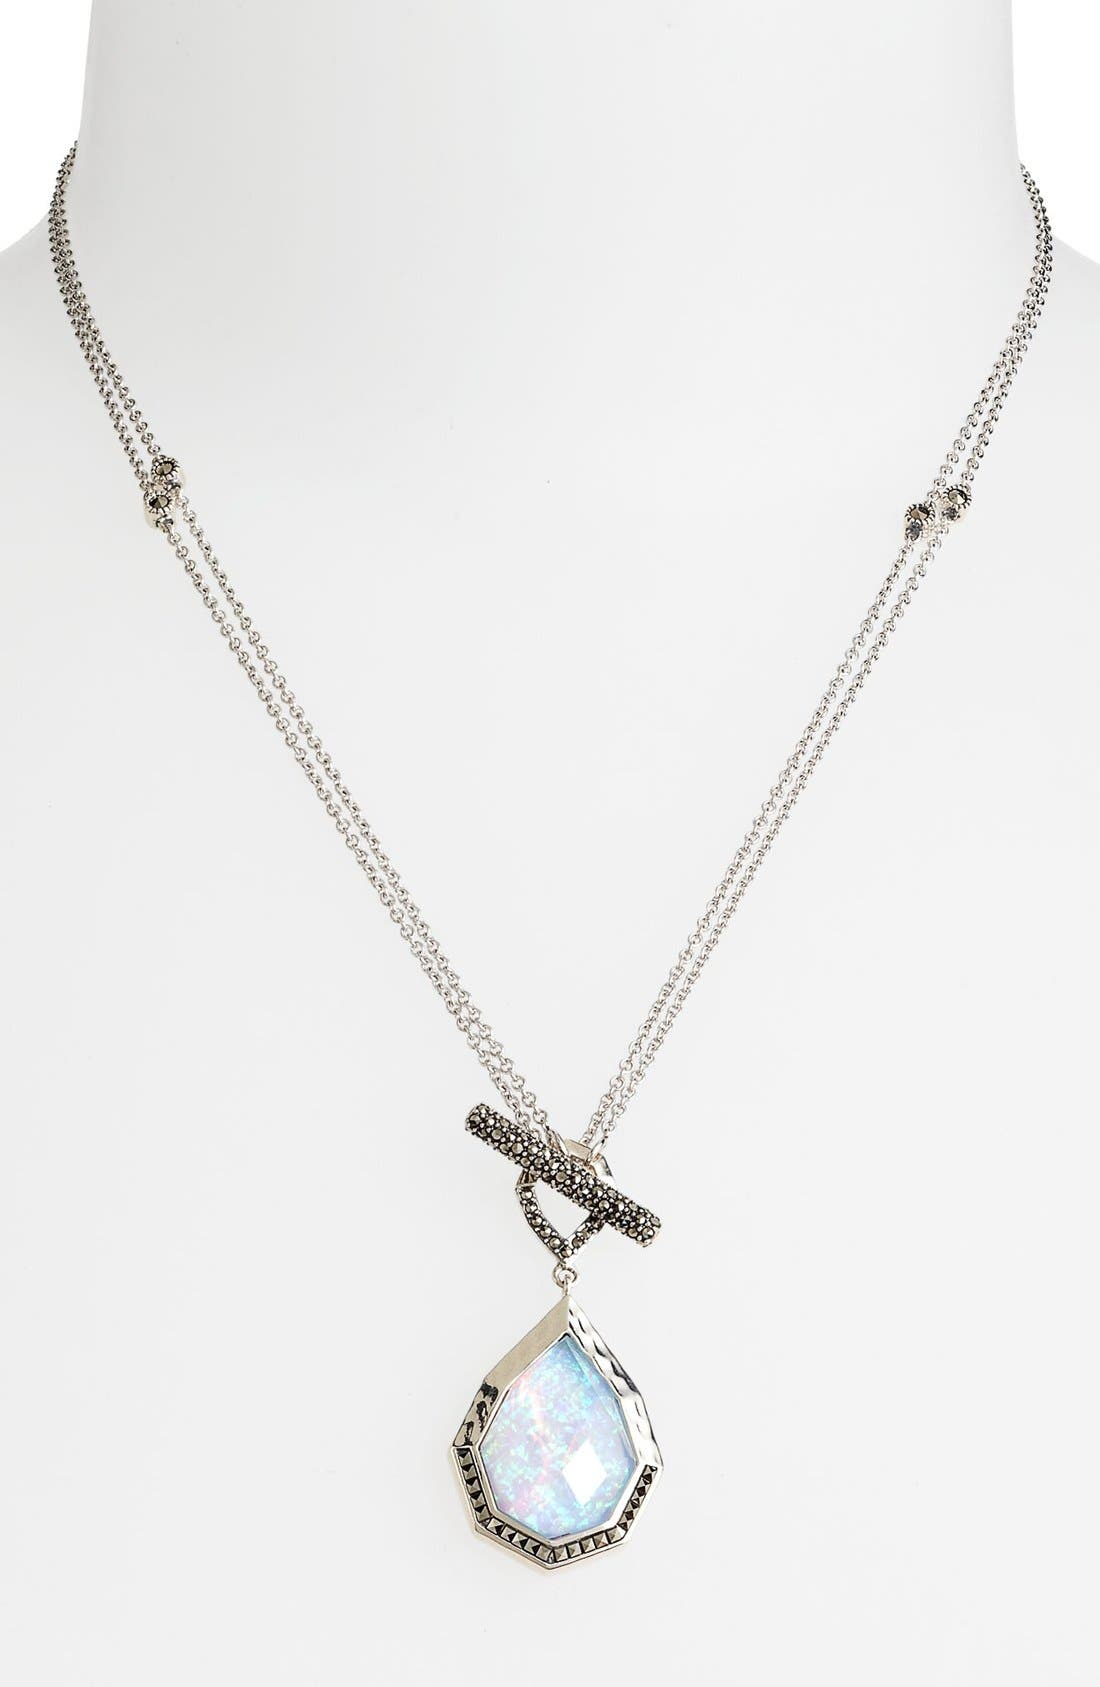 Main Image - Judith Jack Convertible Pendant Necklace